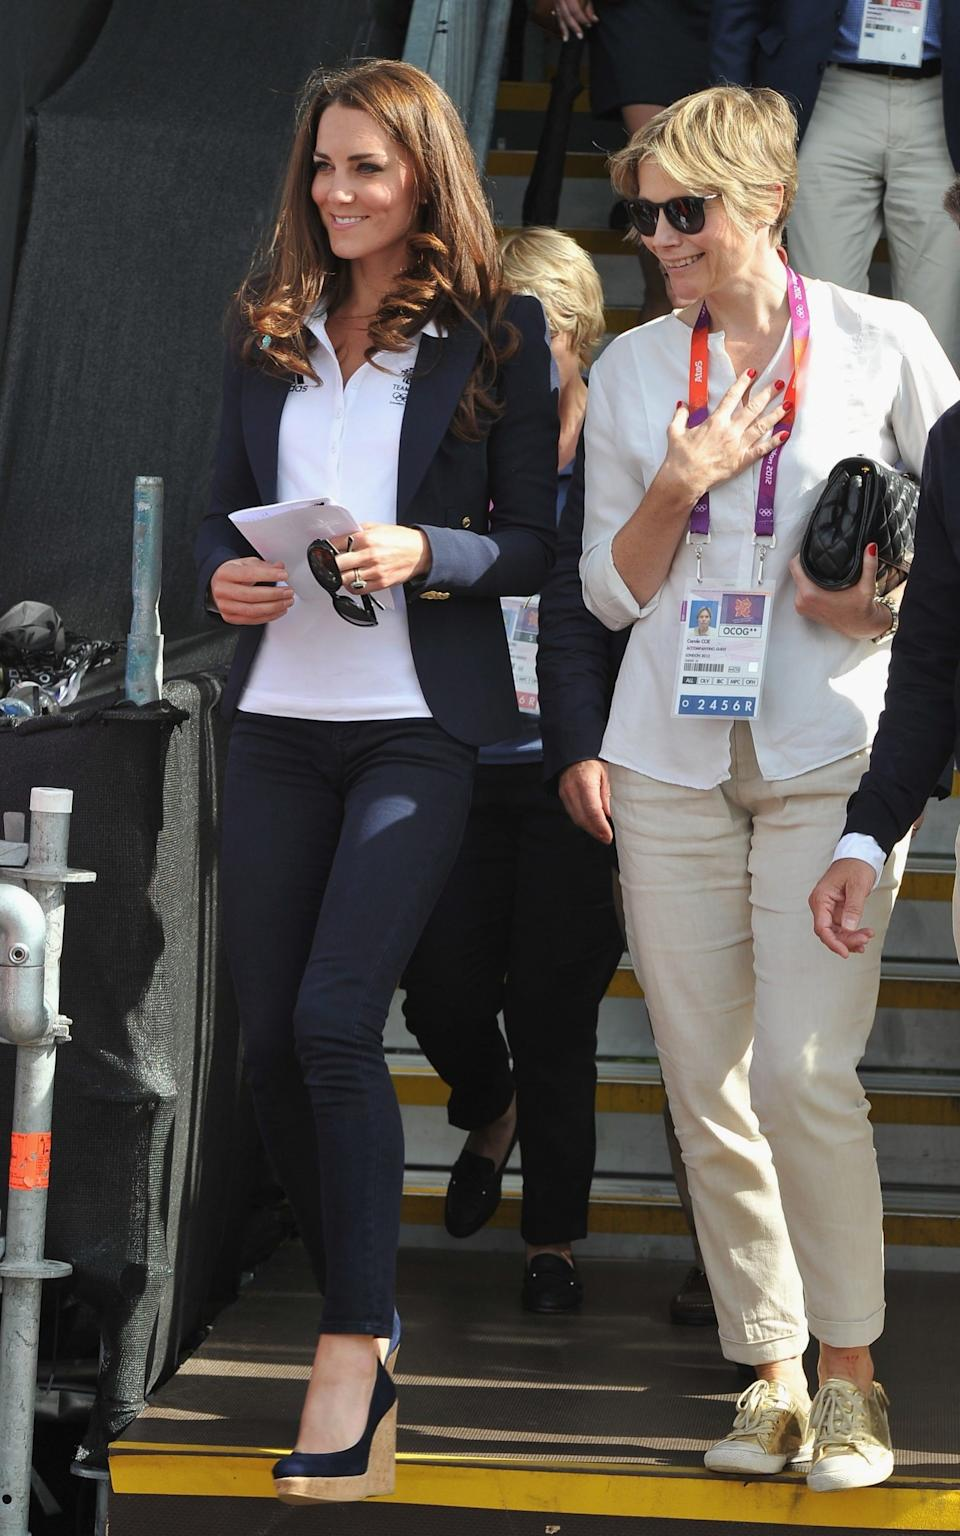 The Duchess of Cambridge at the London 2012 Olympics - Getty